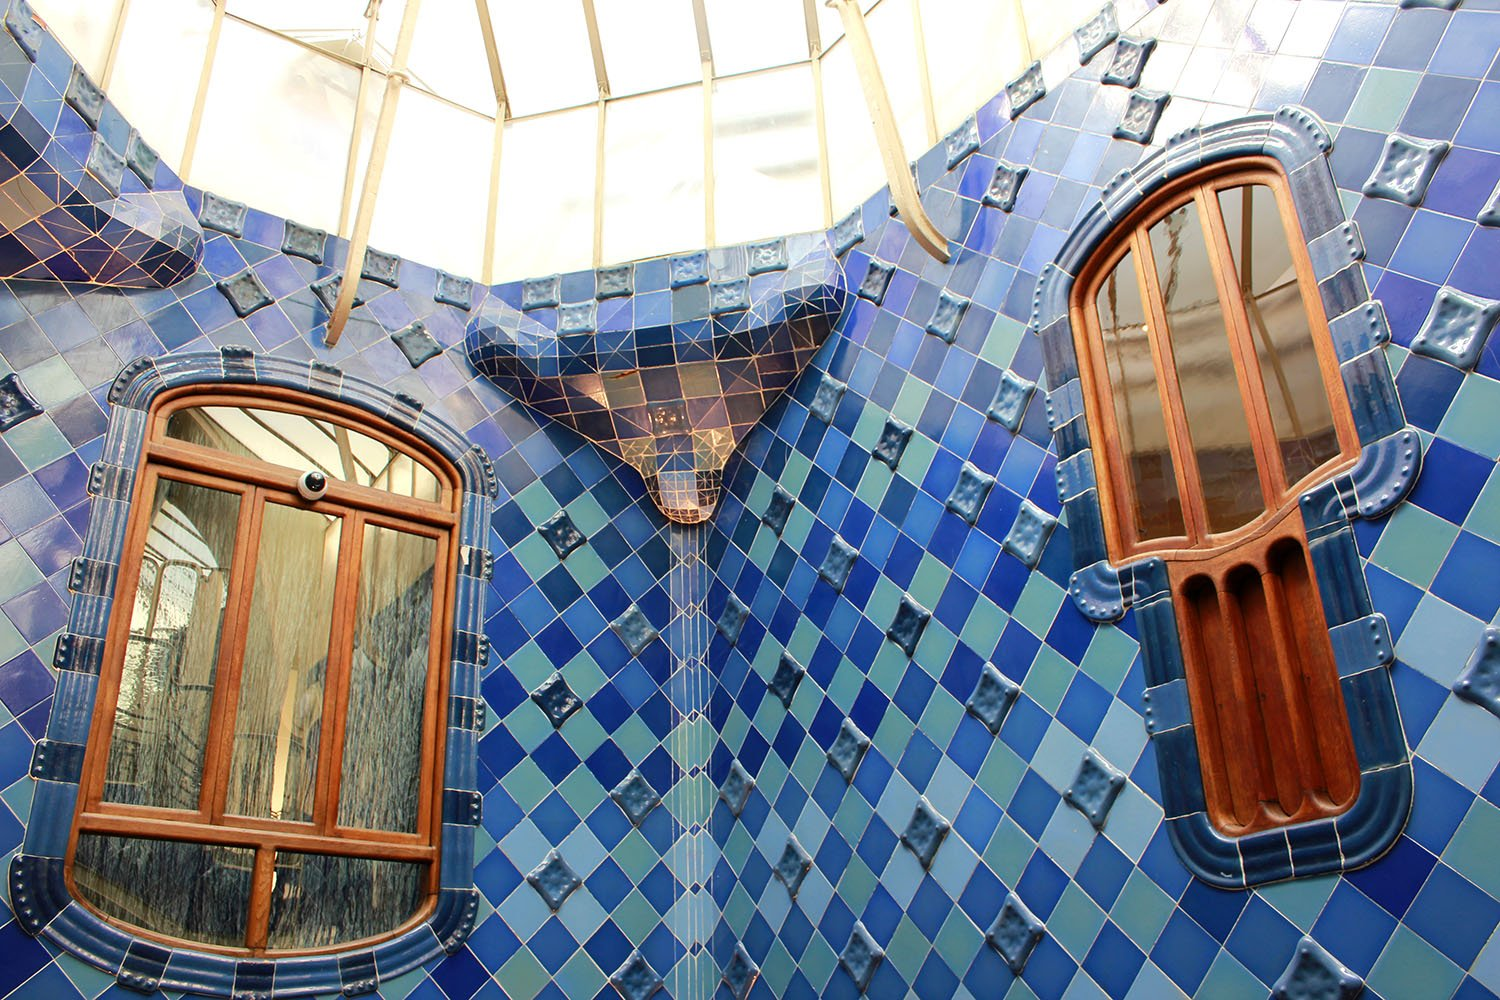 blue tiles at Casa Batllo, Barcelona